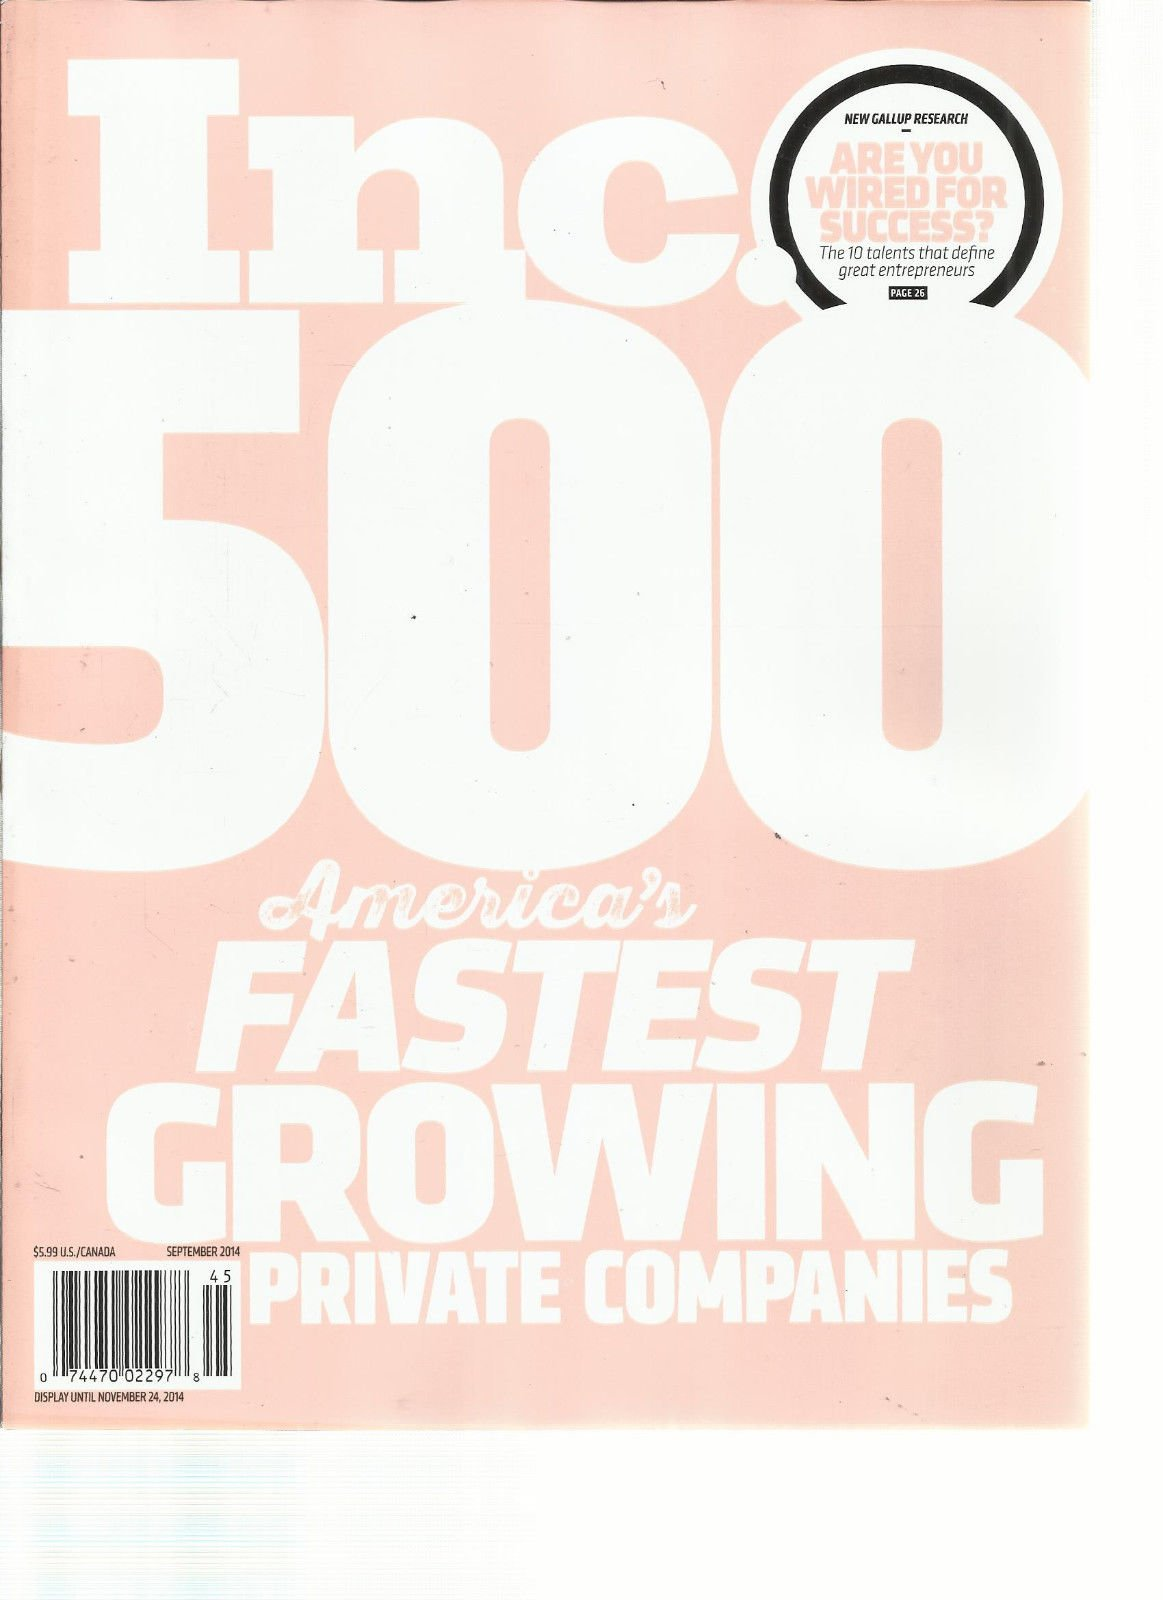 INC 500 AMERICA'S FASTEST GROWING PRIVATE COMPANIES SEPTEMBER, 2014